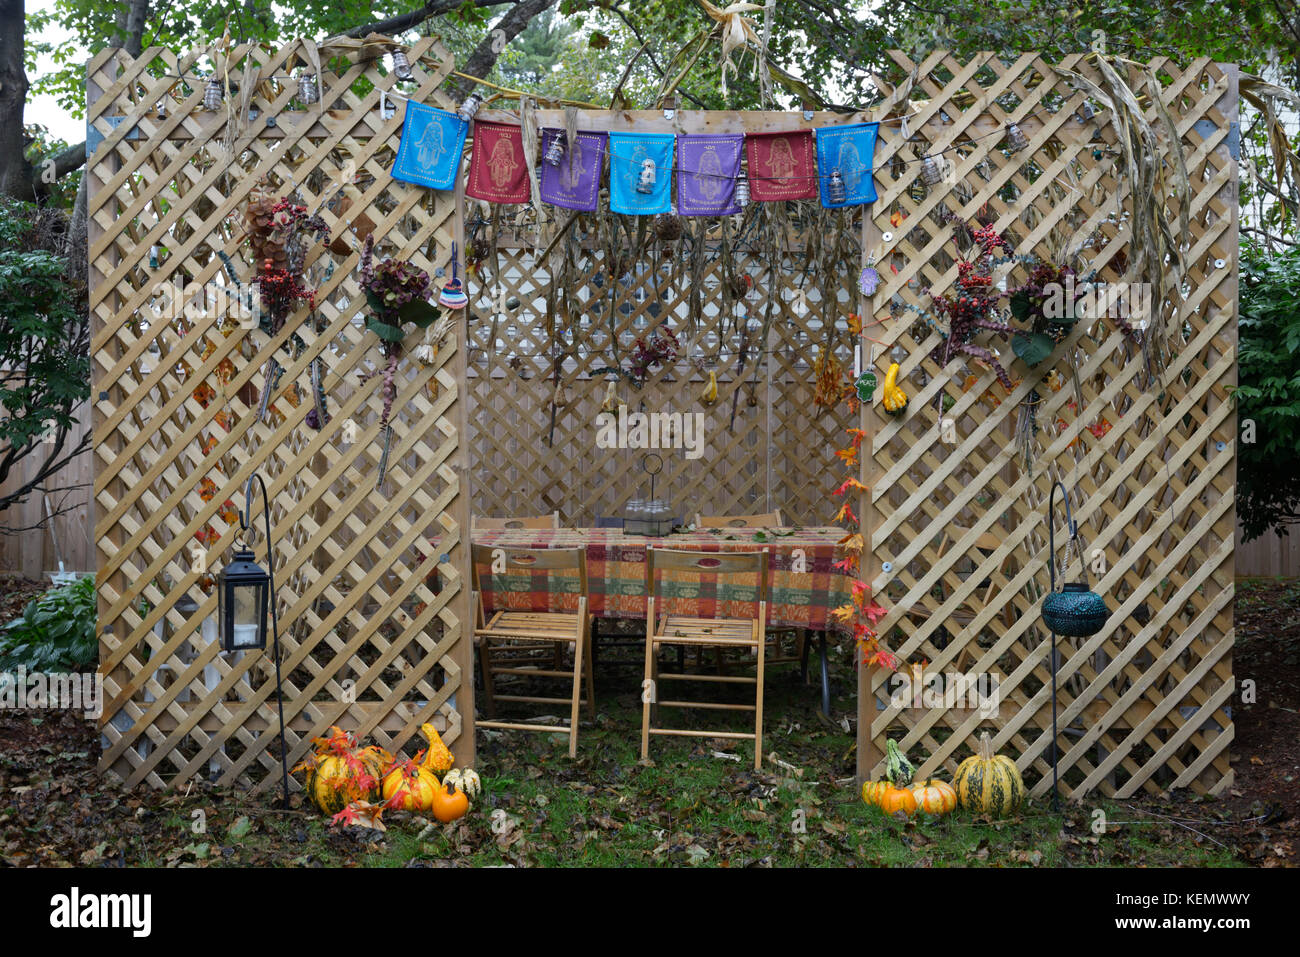 Jewish sukkah, a temporary structure for gathering in during the autumn harvest festival Sukkot - Stock Image